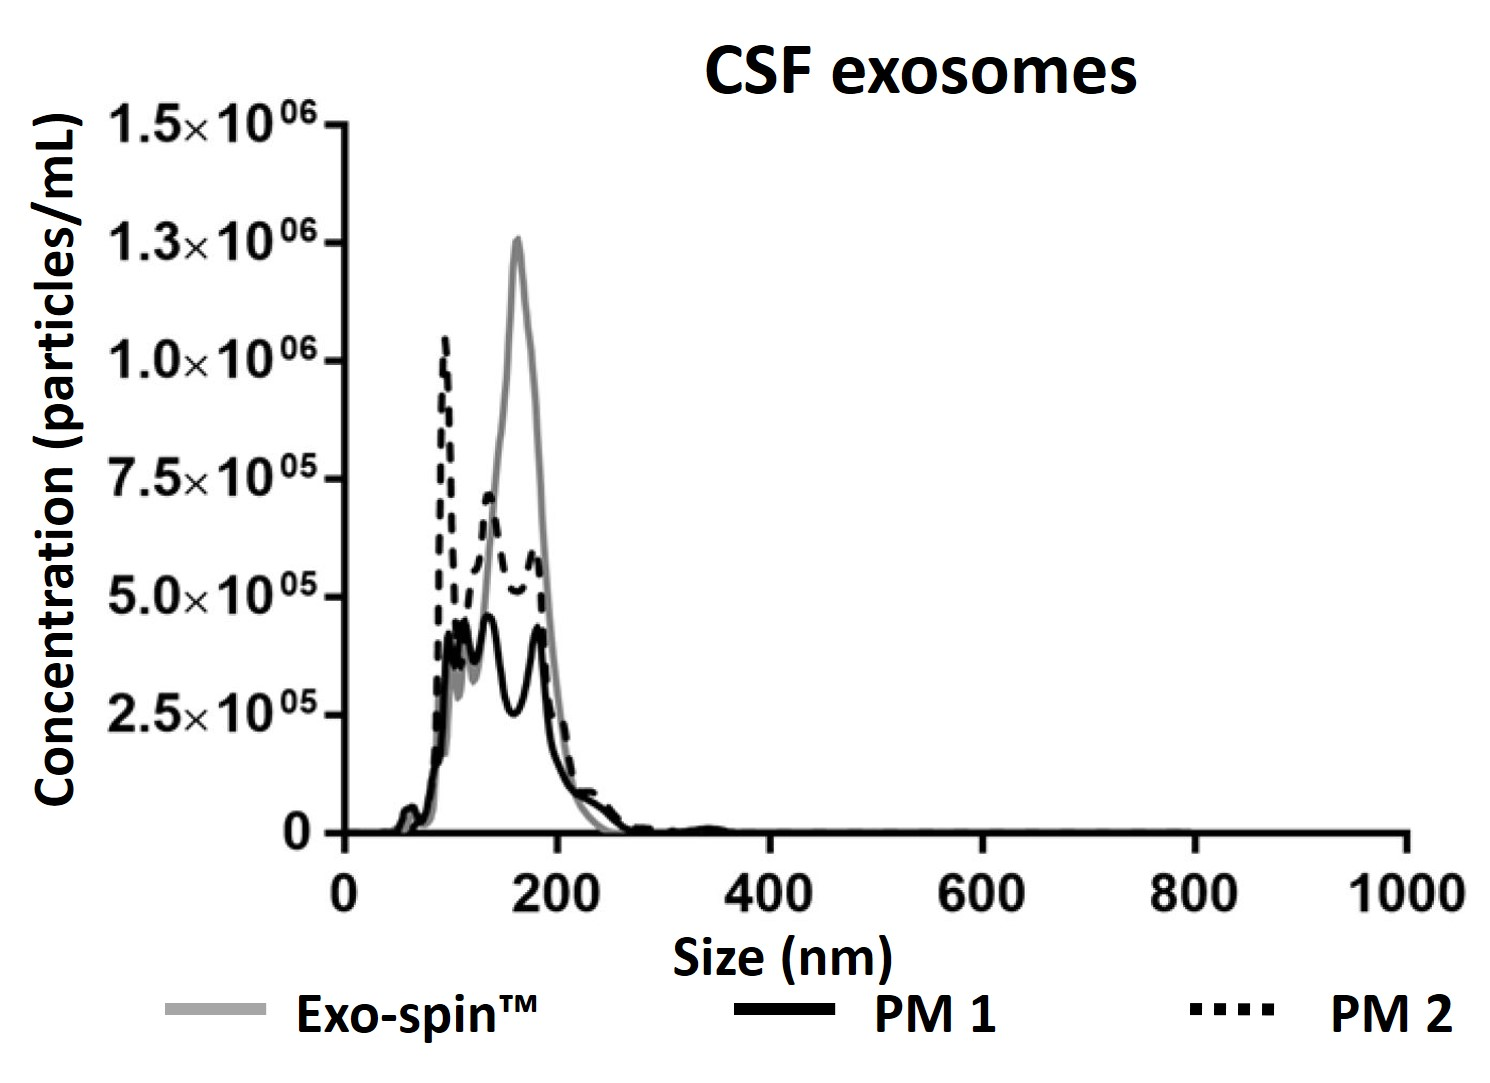 Exosomes from CSF